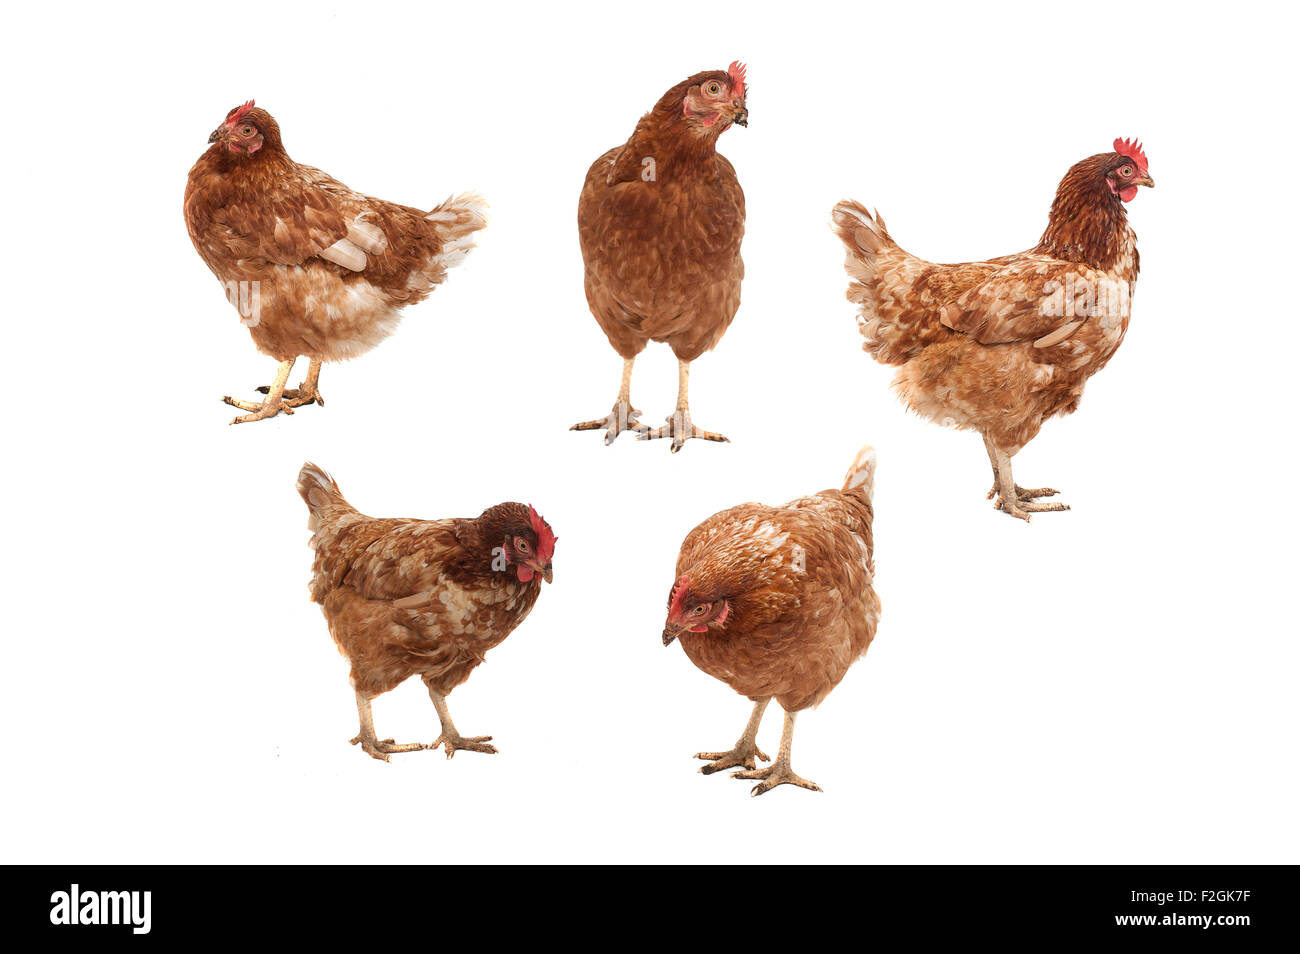 Five chickens in different poses on a white background. - Stock Image